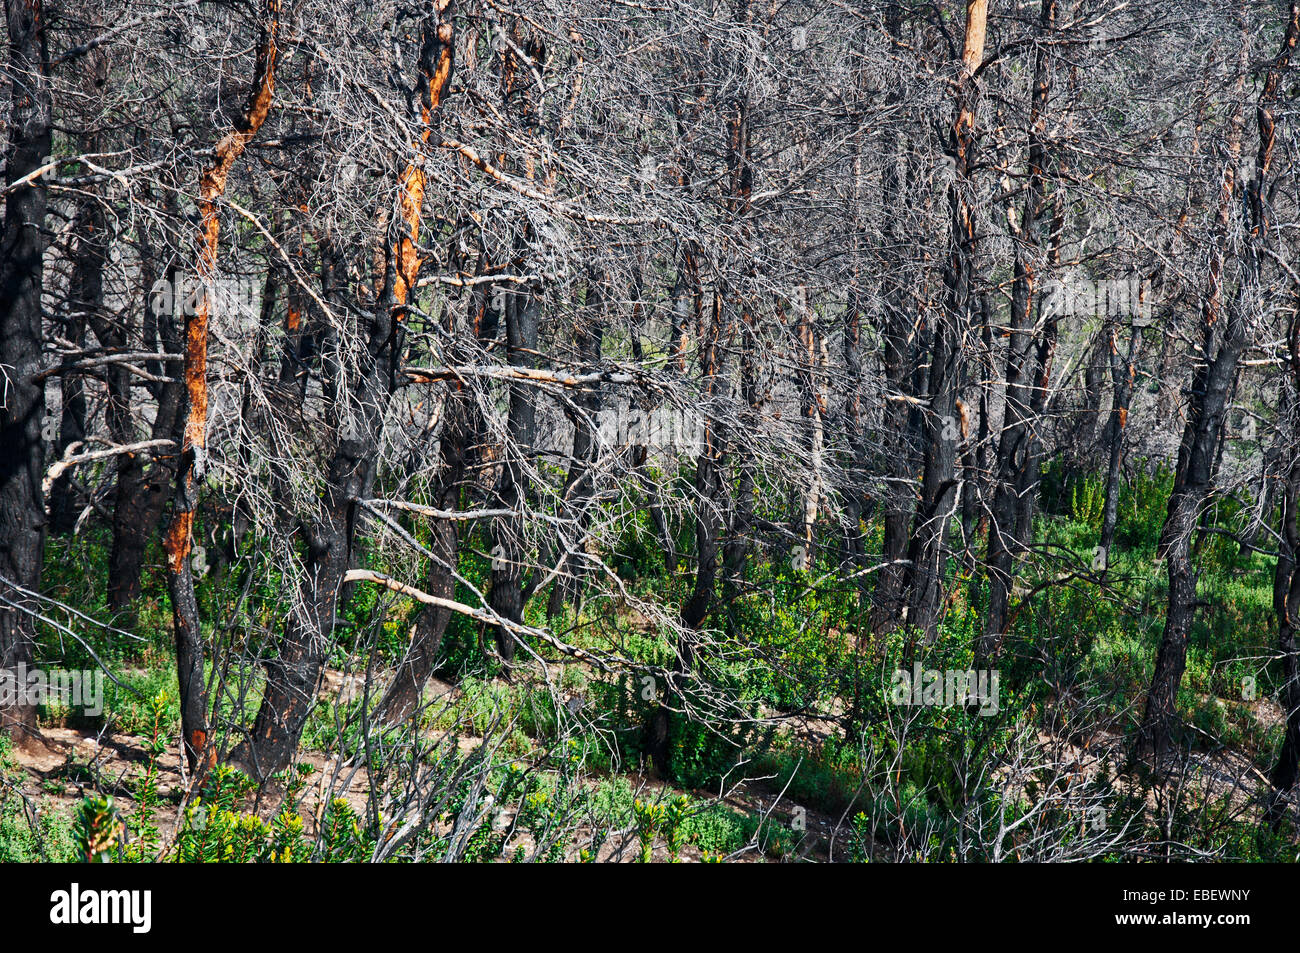 Vegetation six years after big forest fire - Stock Image